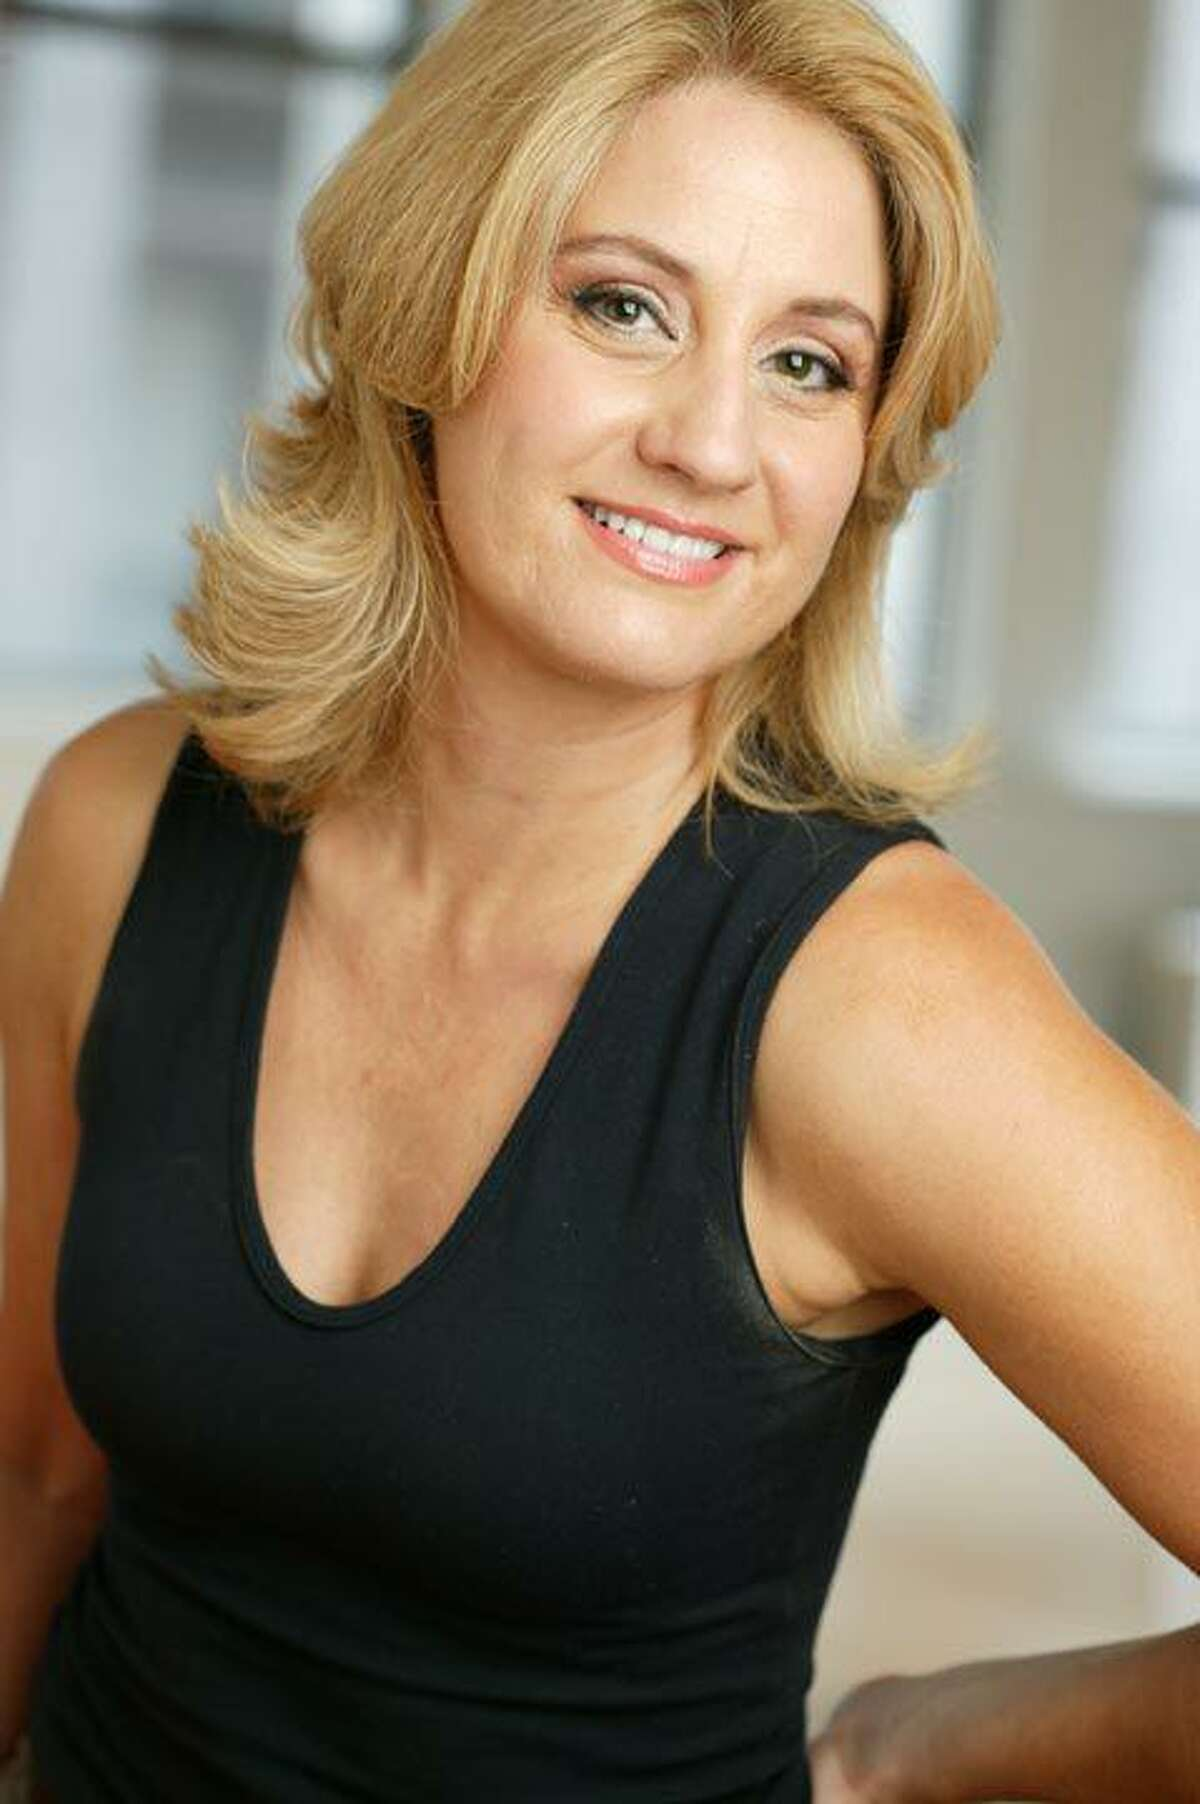 Kristin Huffman is the artistic director at New Paradigm Theatre.